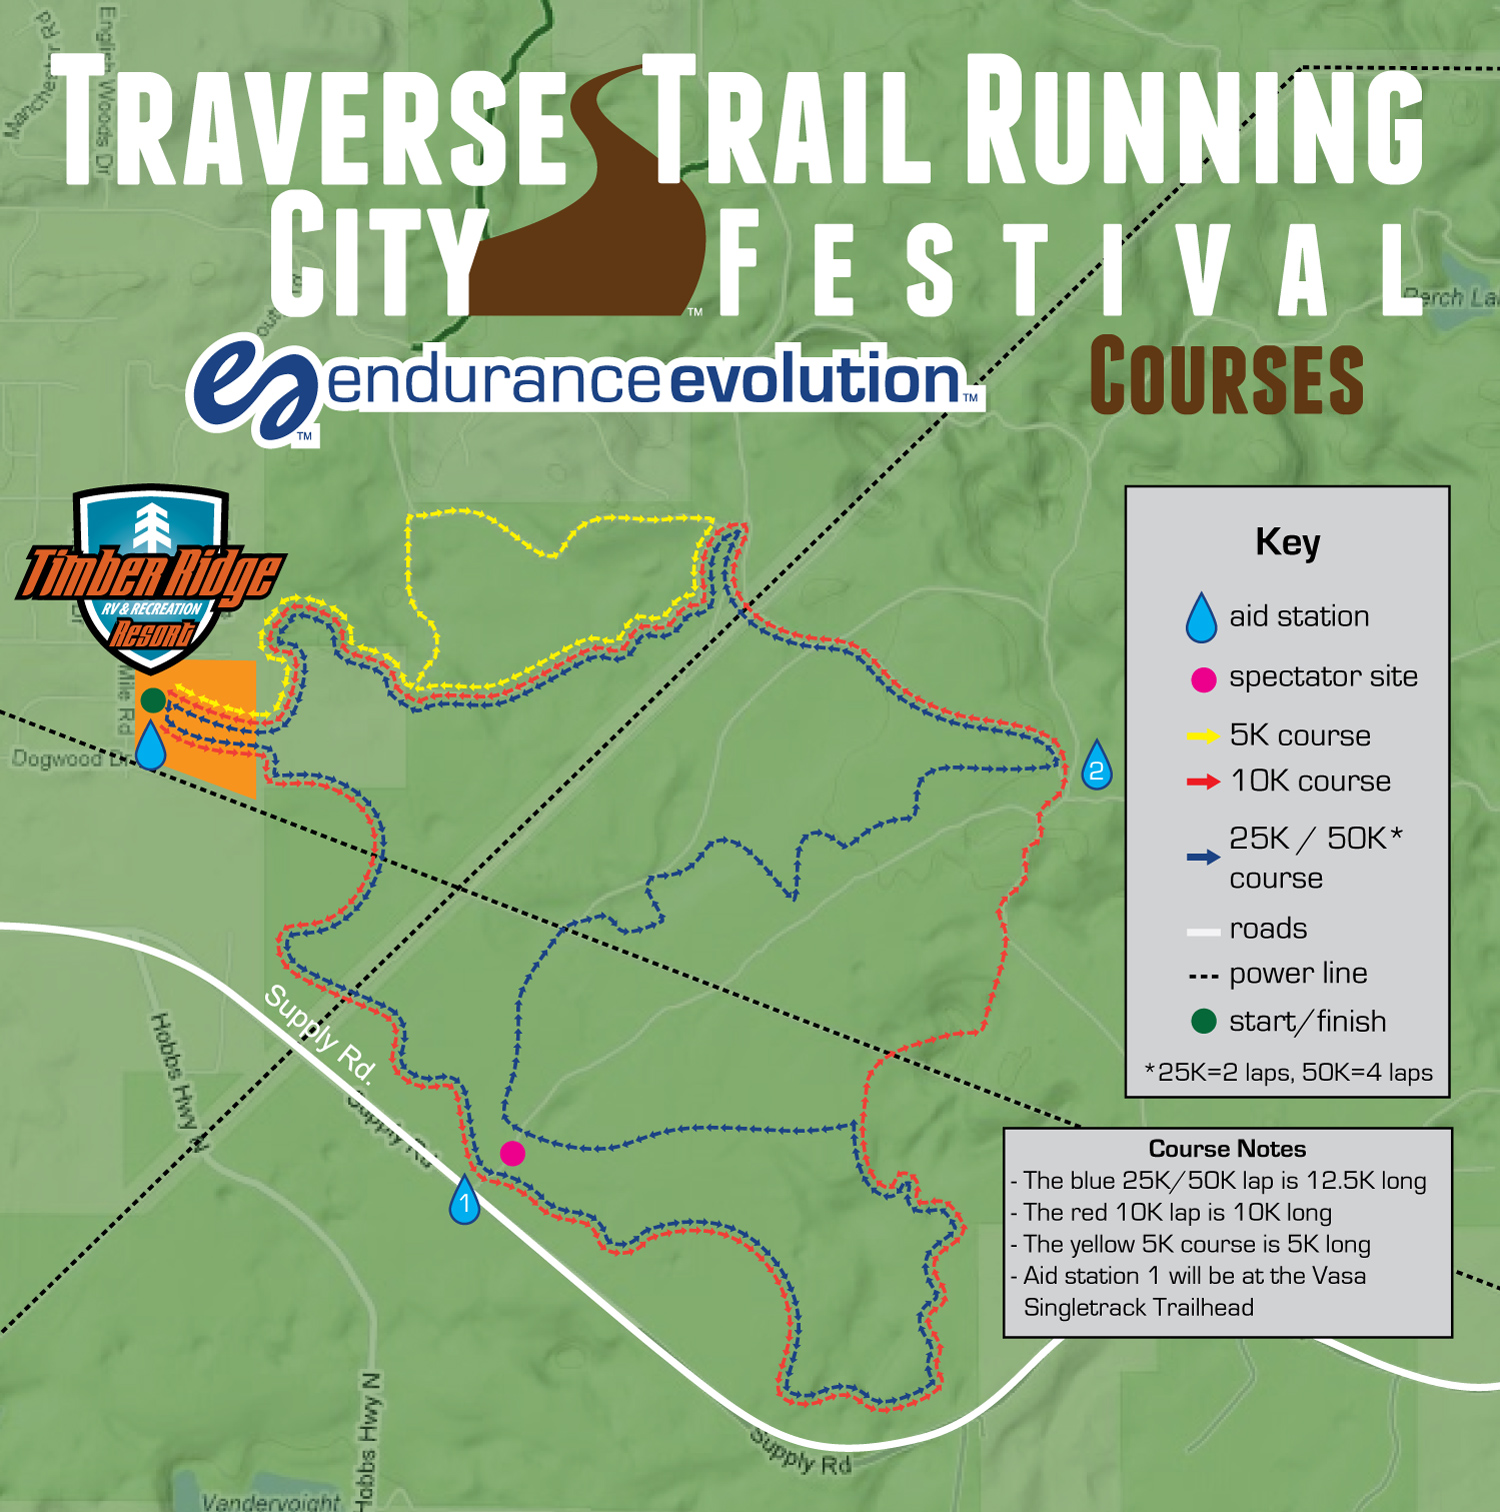 Traverse City Trail Running Festival Courses